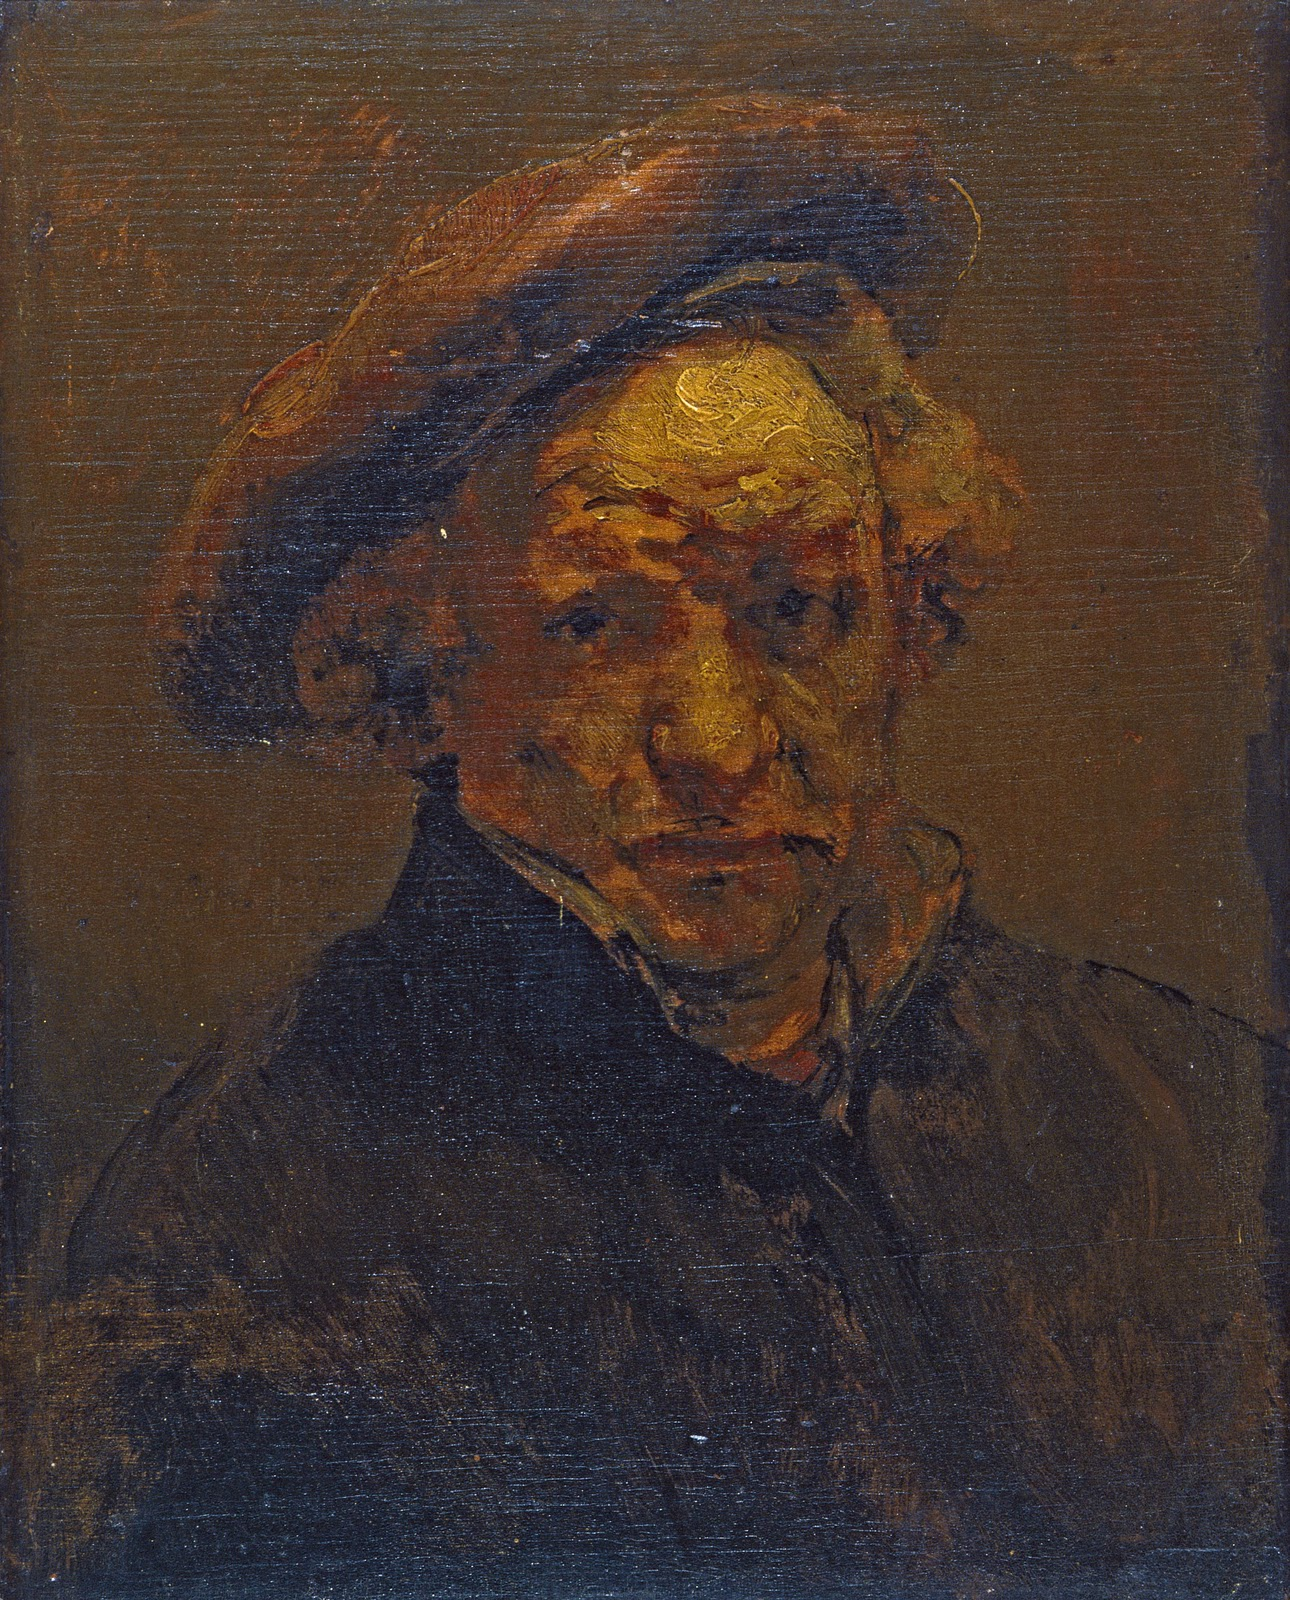 art corpus review of irrational marks bacon and rembrandt at ordovas it is well known that bacon took a lot of inspiration sometimes quite directly from a number of his artistic predecessors perhaps most notably